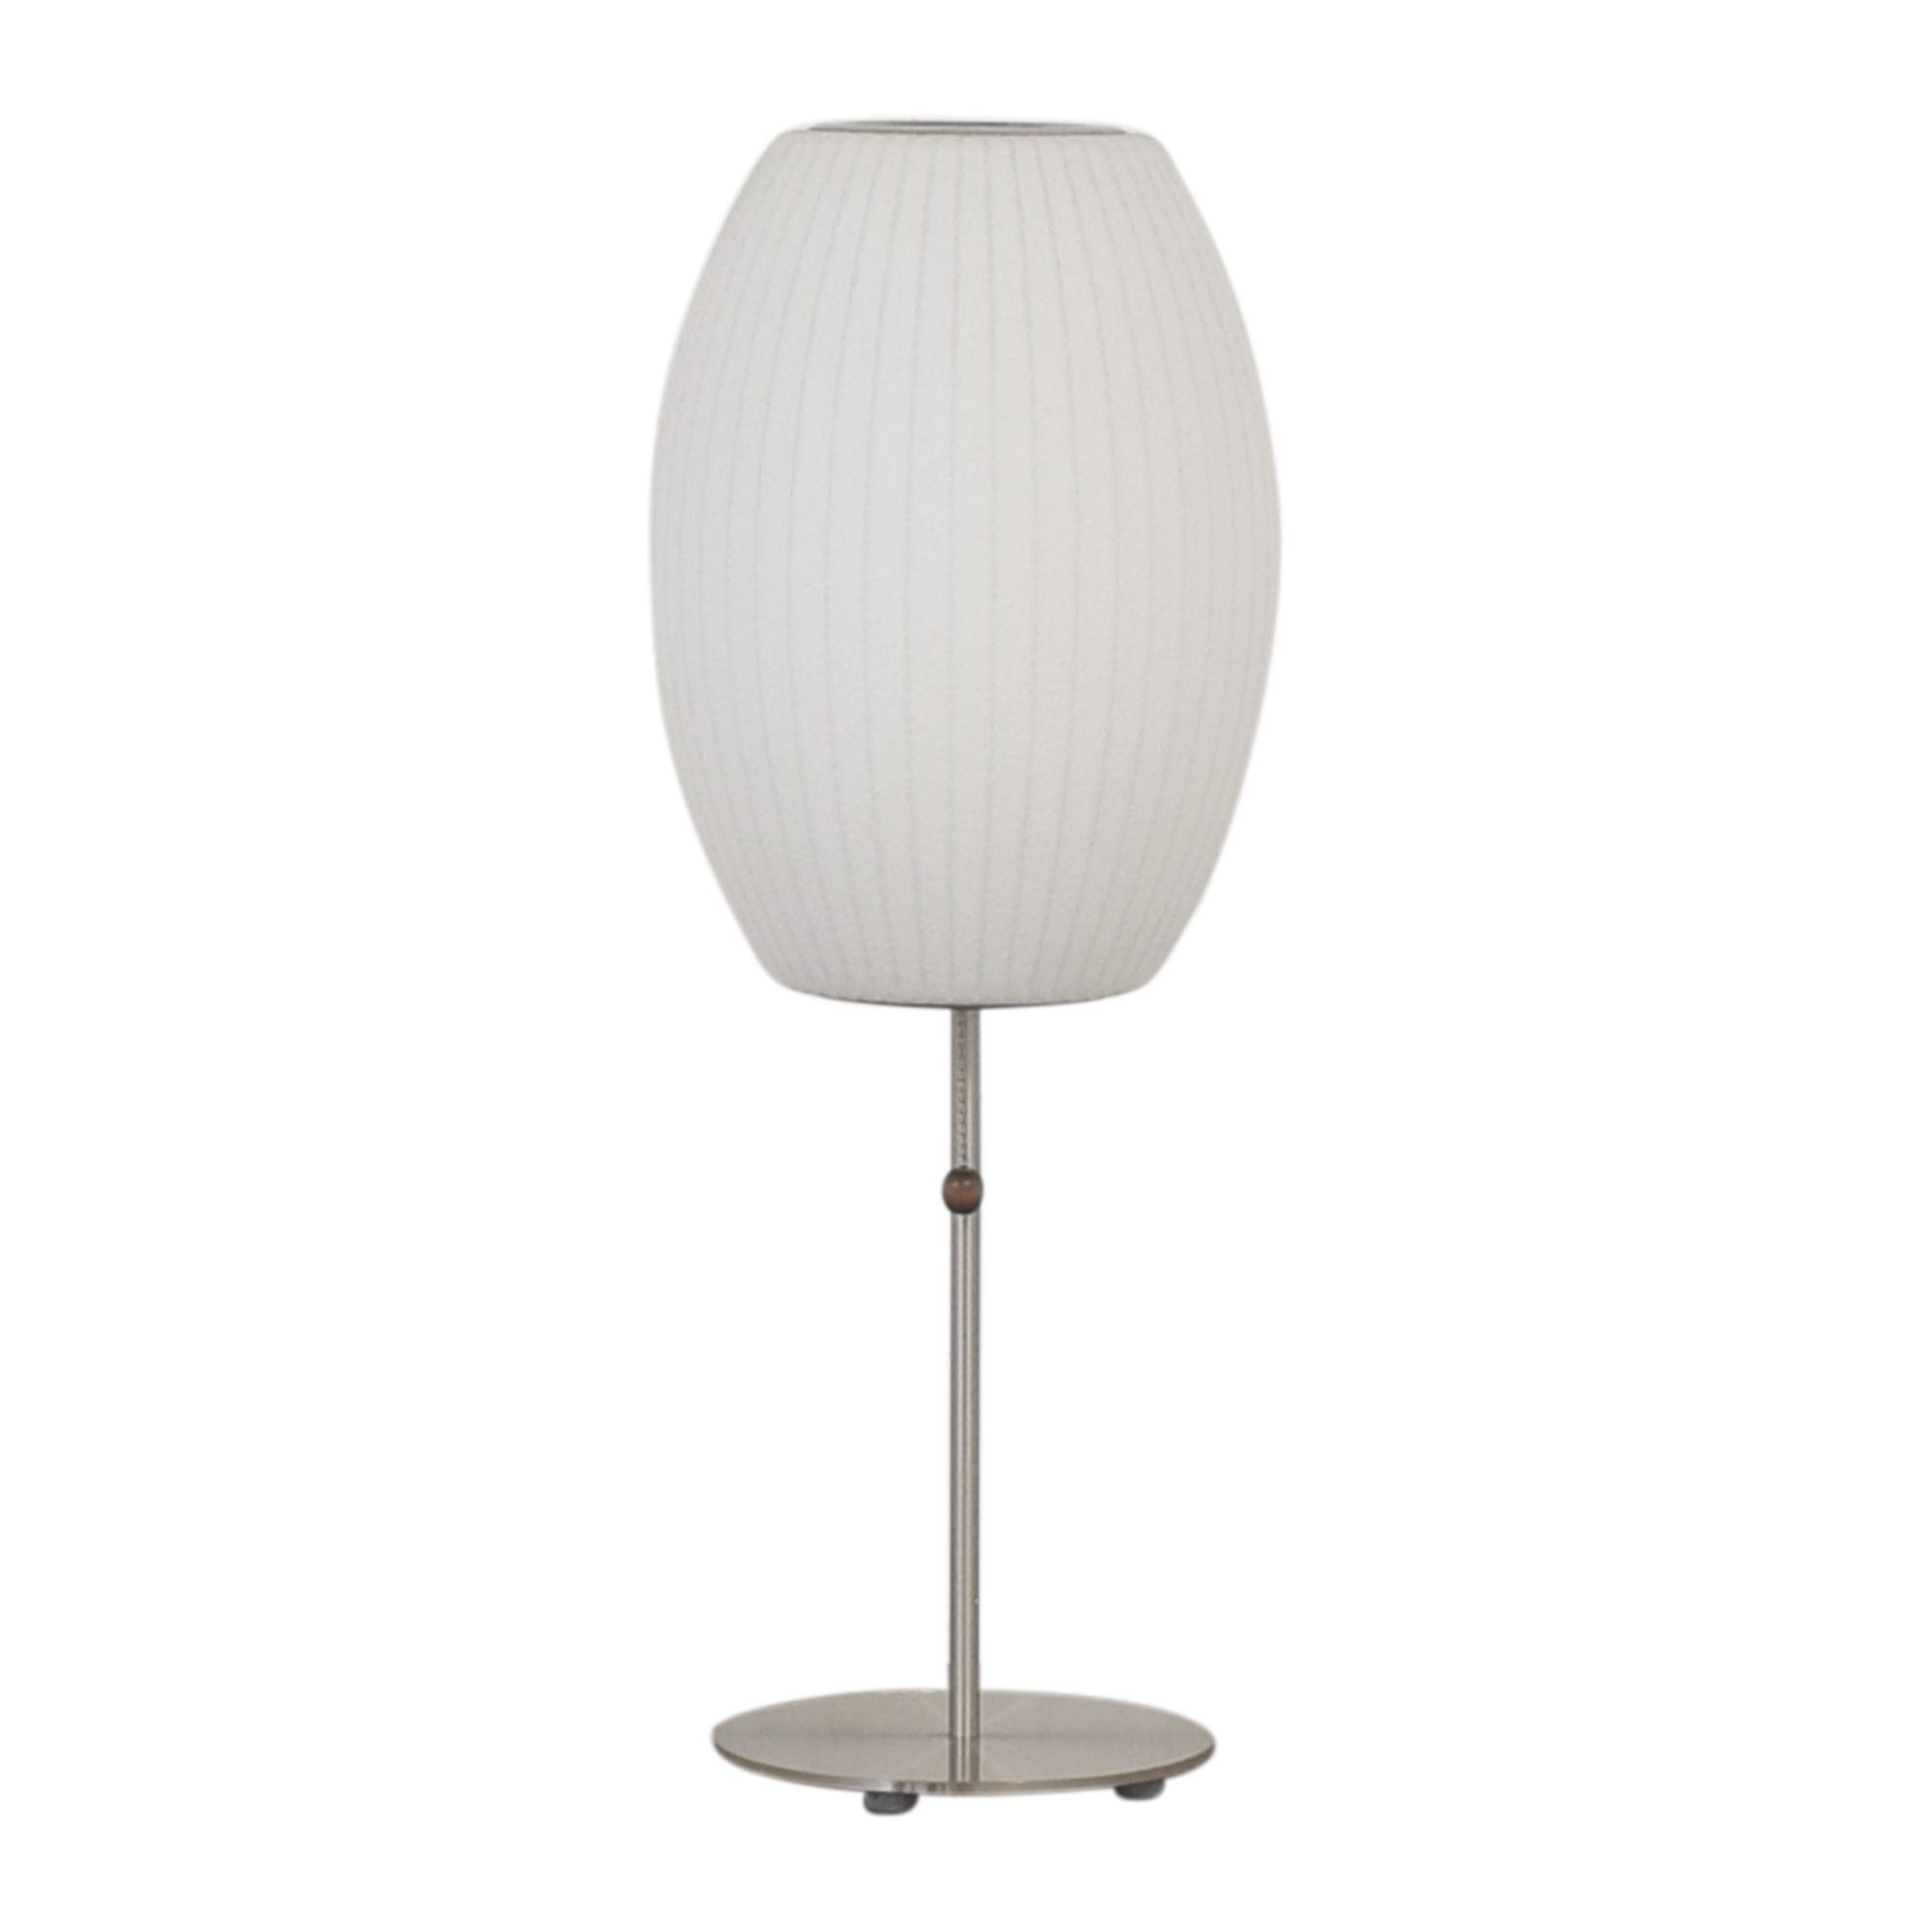 buy Modernica Modernica Nelson Bubble Lamps Cigar Lotus Table Lamp online